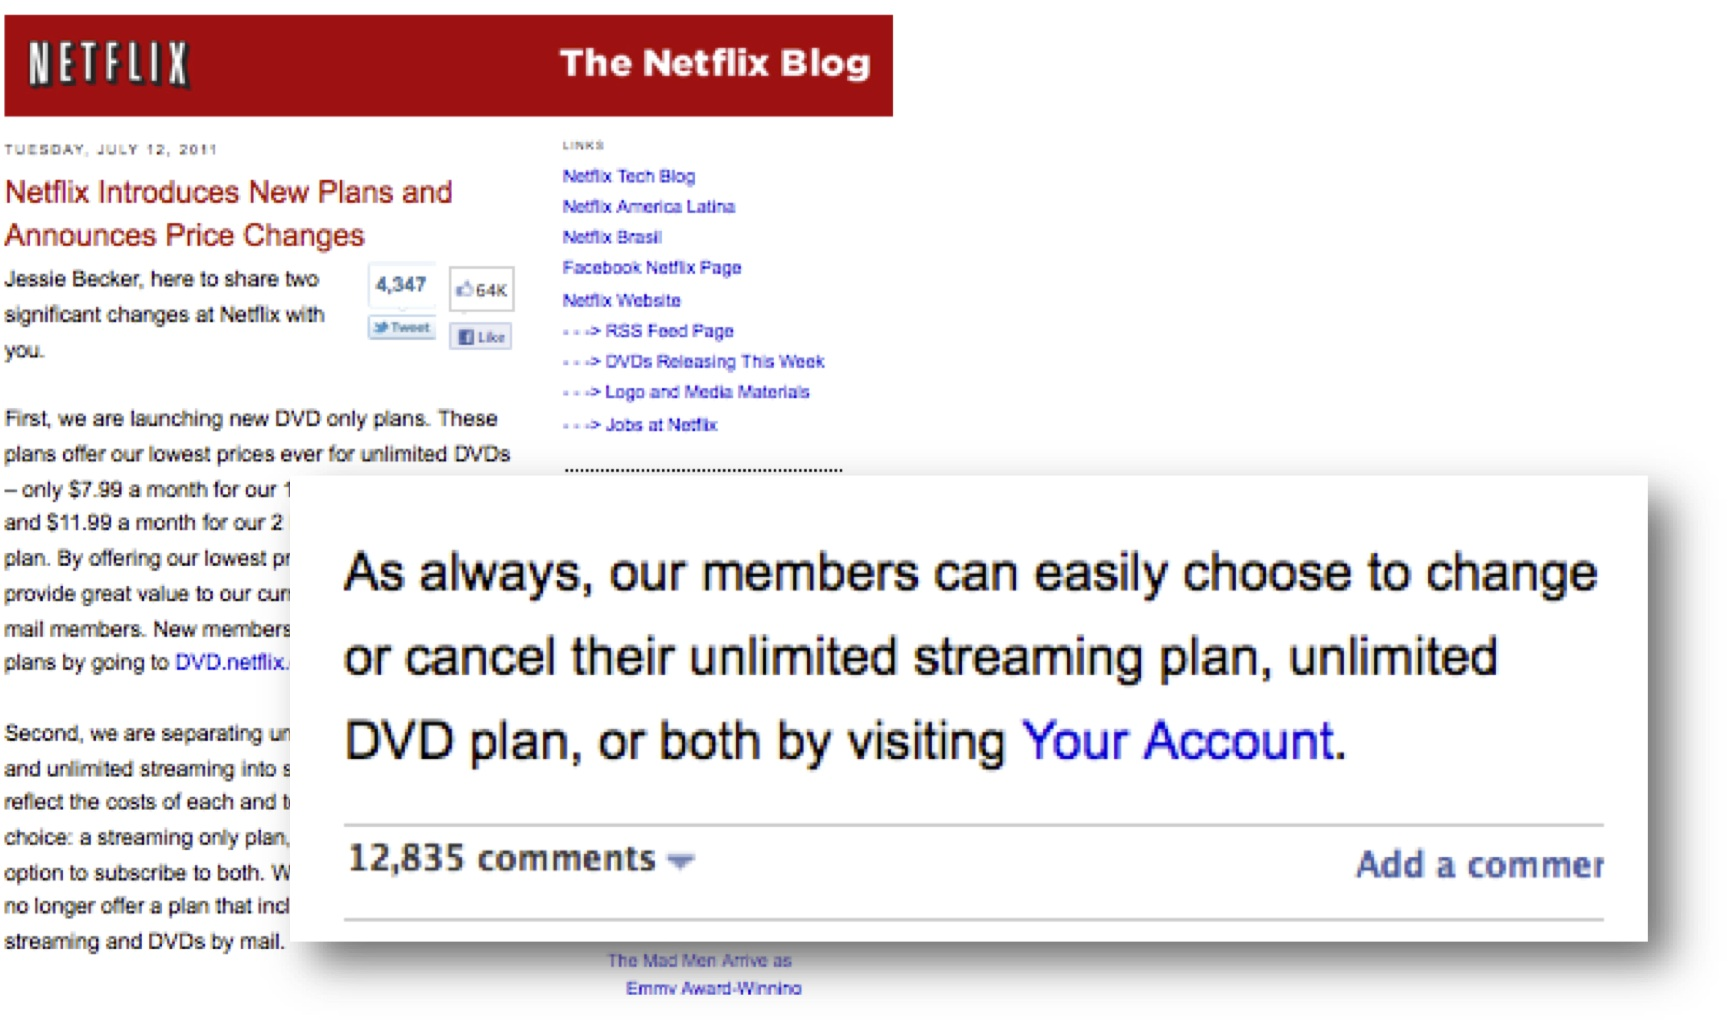 how to contact netflix to cancel